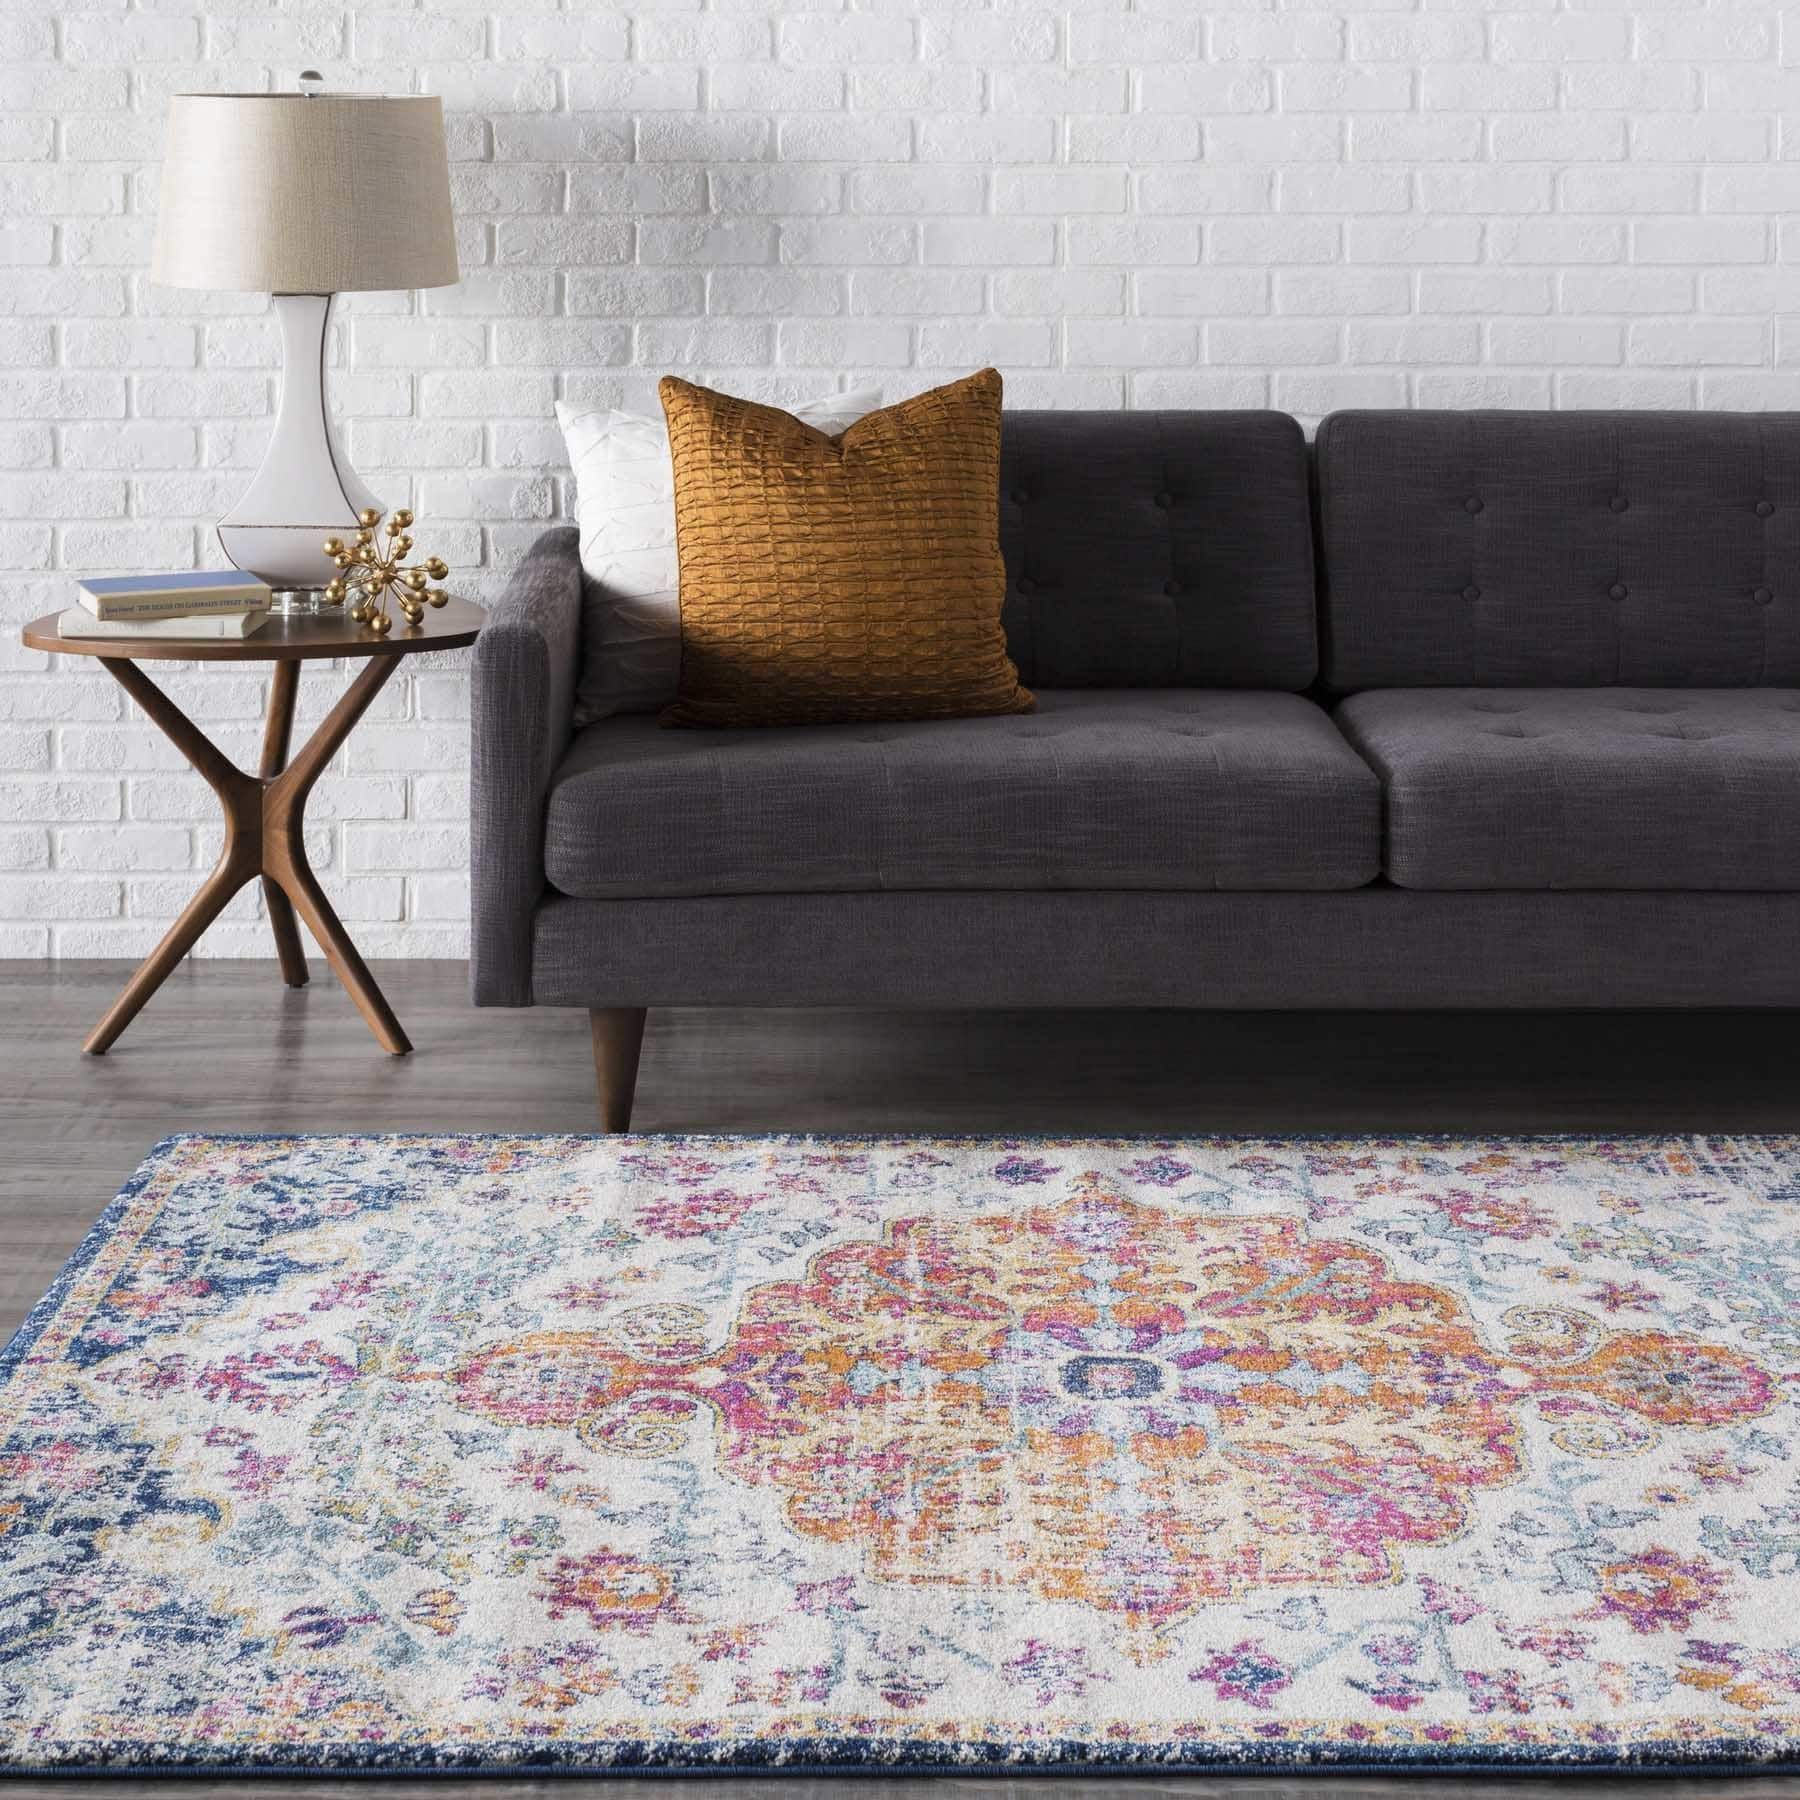 10 Best Places To Buy Cheap Rugs in 2018 - Stylish, Affordable Area Rugs